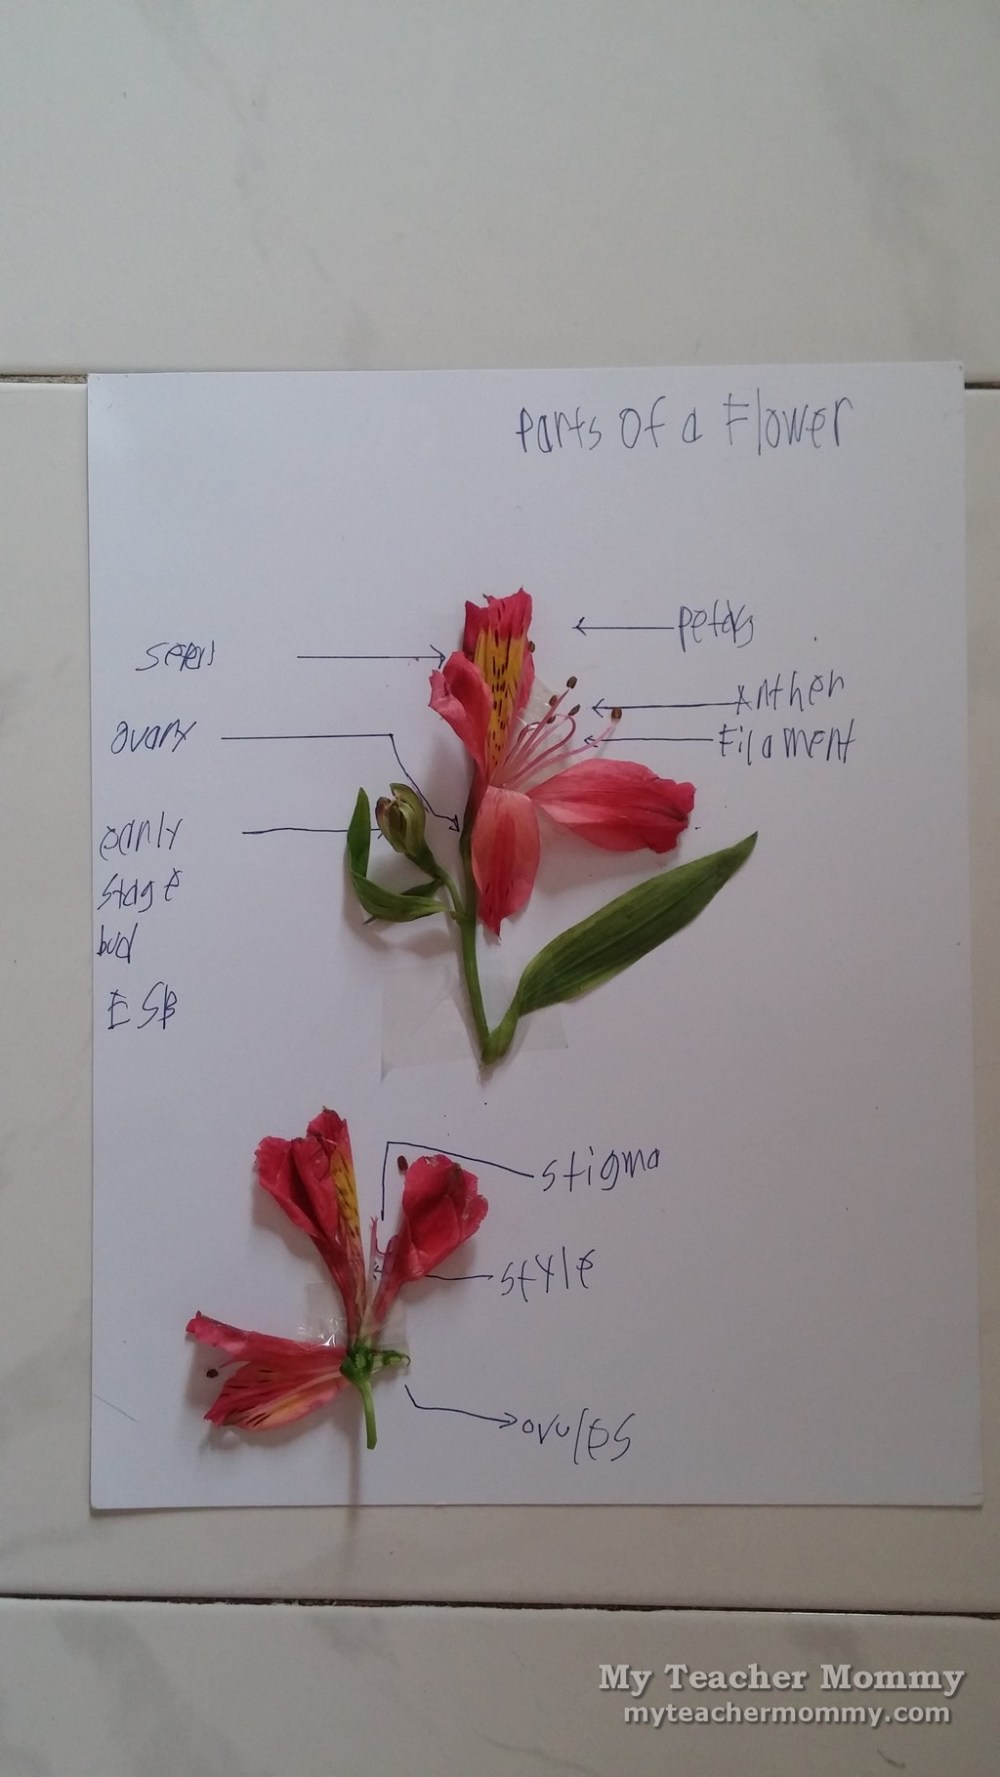 medium resolution of as labeling activities go identifying parts of the flower is fairly easy using a diagram from his science textbook as a guide motito correctly named all